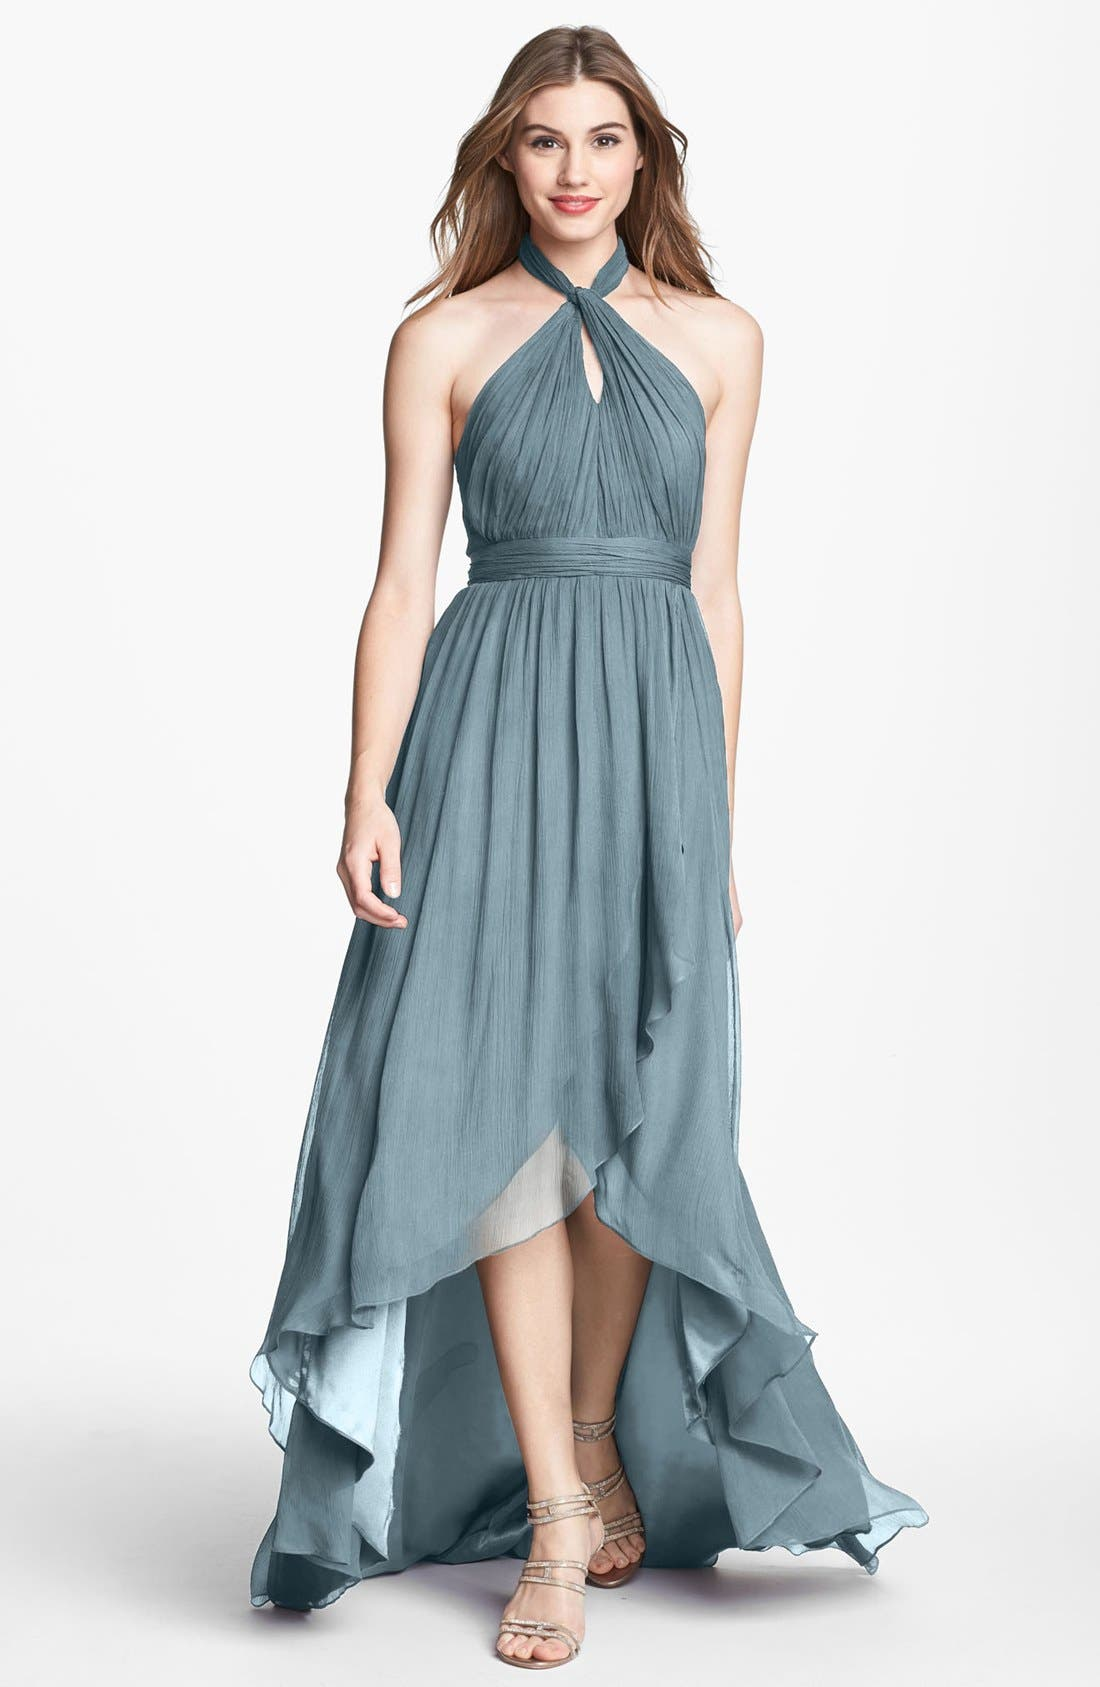 Alternate Image 1 Selected - Jenny Yoo 'Olivia' Crinkled Chiffon High/Low Halter Dress (Online Only)